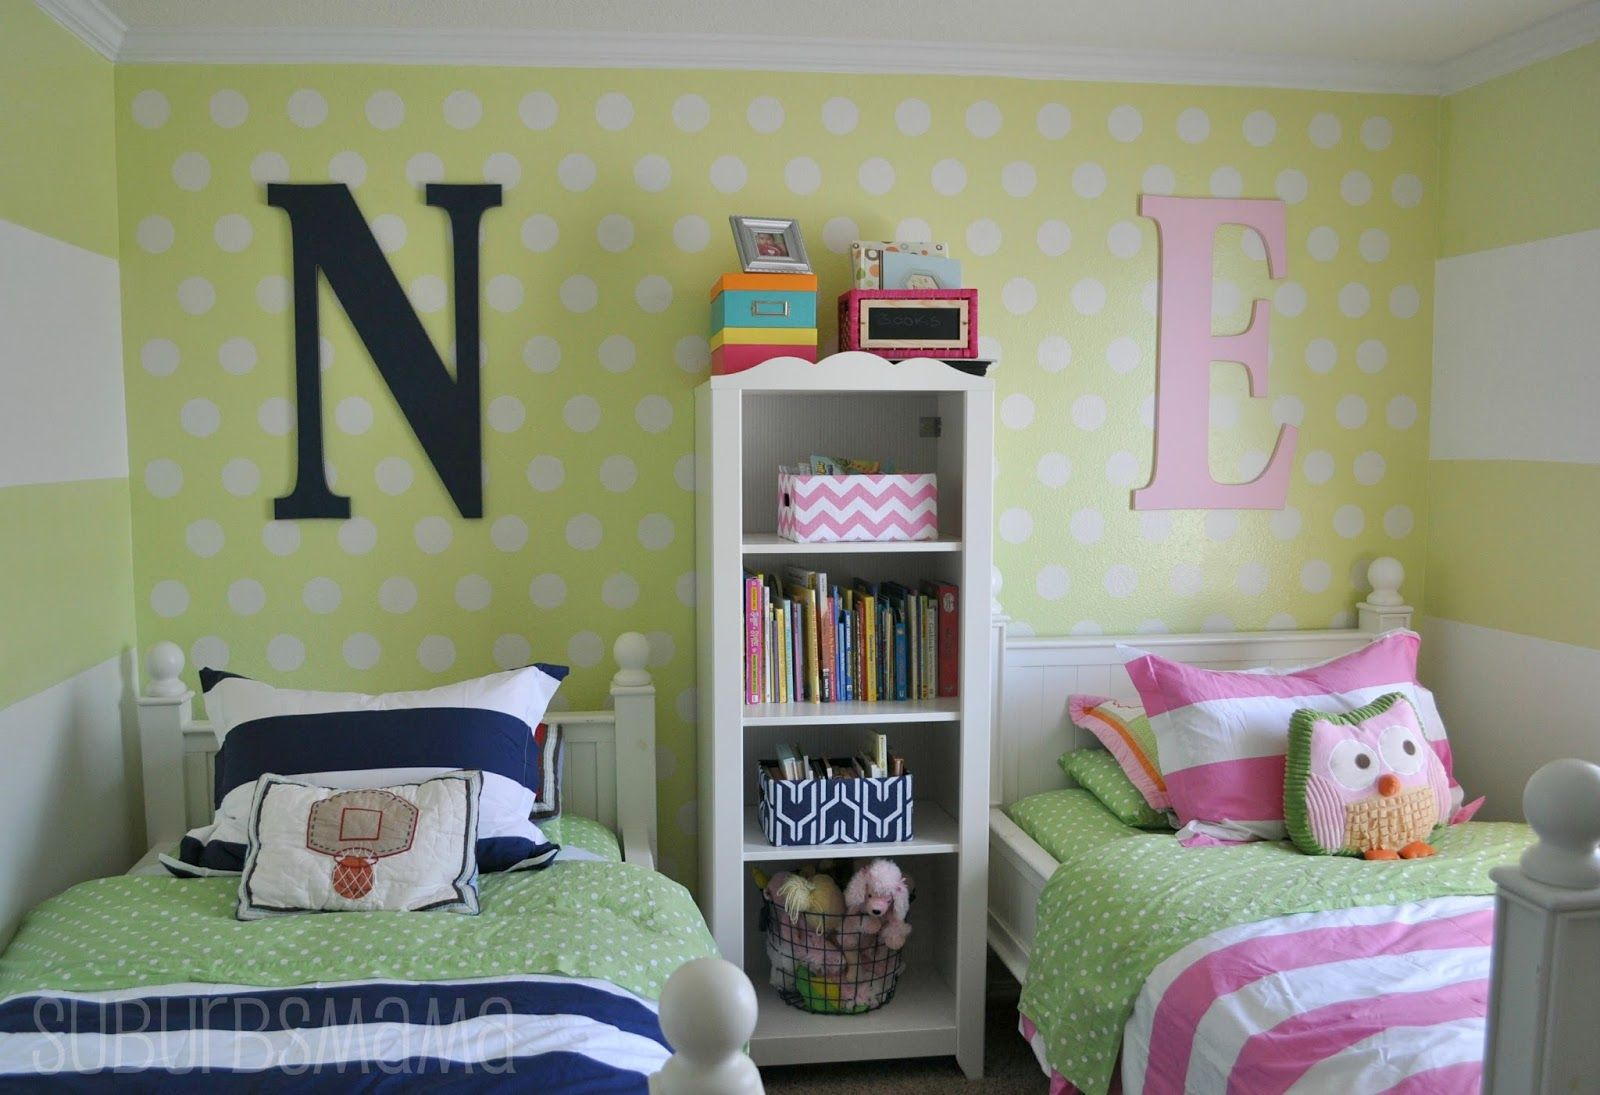 Amazing 16 Gorgeous Boy Girl Room Ideas : Beautiful Boy And Girl Shared Bedroom  With Two Single Size Beds Navy And Pink Stripes Pillows Blankets Plus  Basketball ...